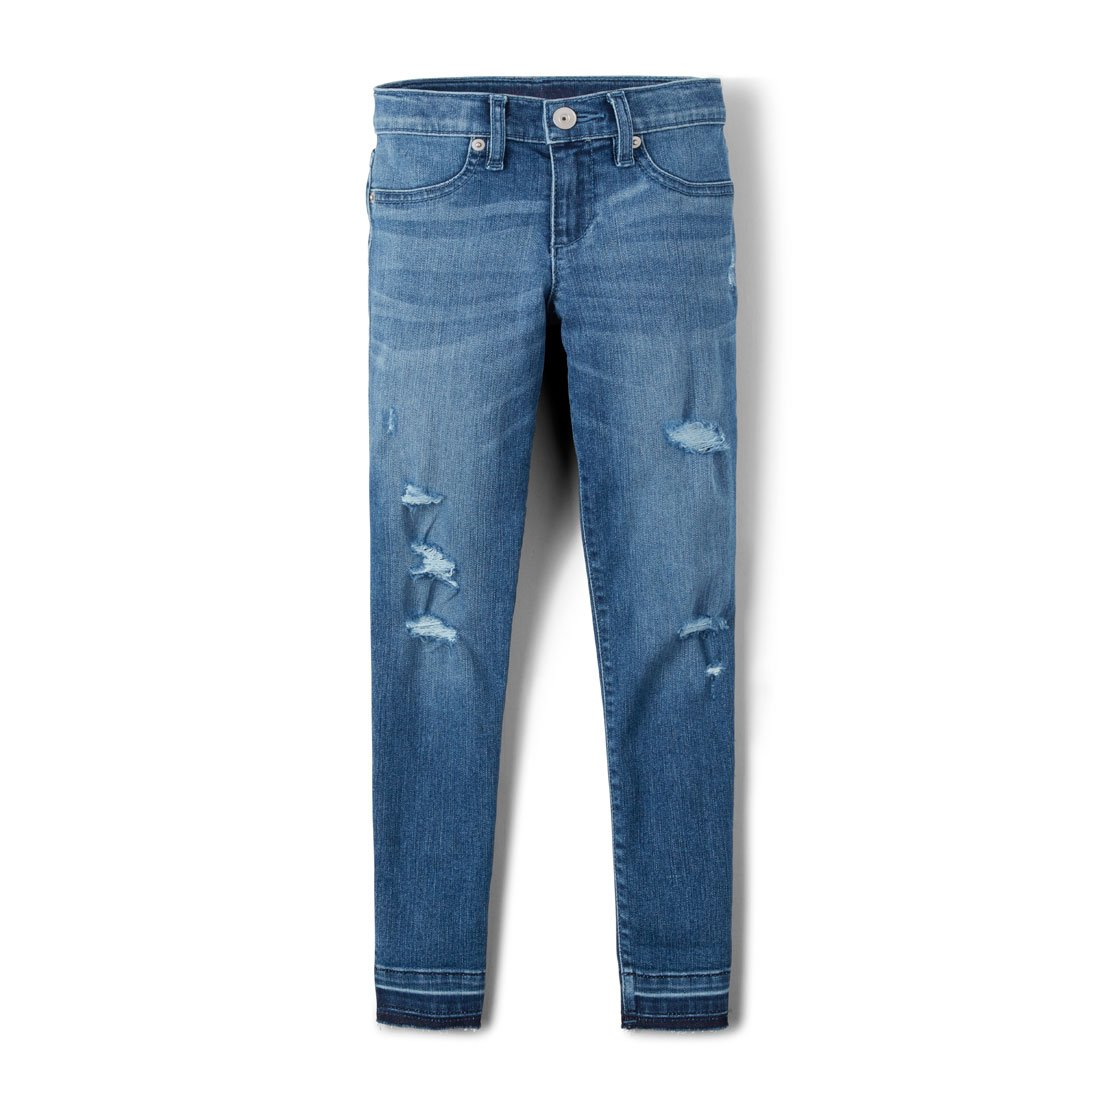 The Children's Place Big Girls' Destructed Denim, Medium Swss Blue Wash, 14 by The Children's Place (Image #1)